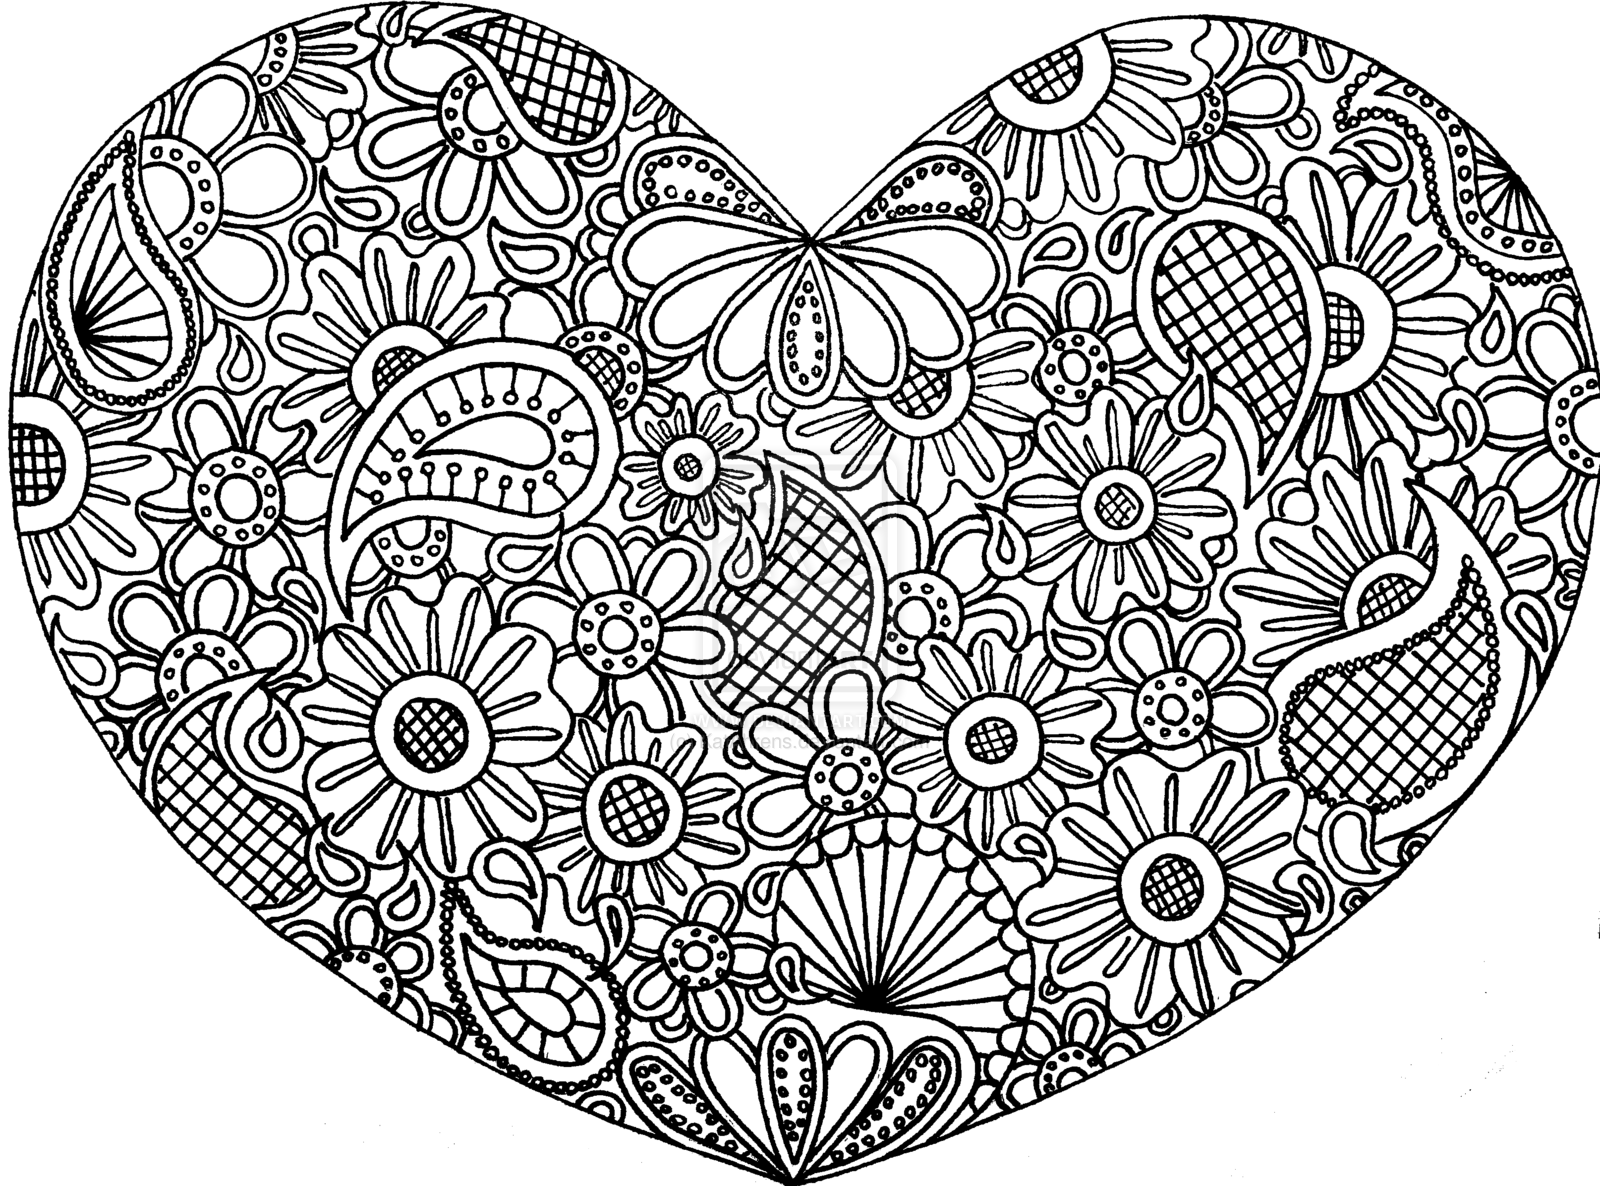 The Wishlist And Coupon Abstract Coloring Pages Heart Coloring Pages Mandala Coloring Pages